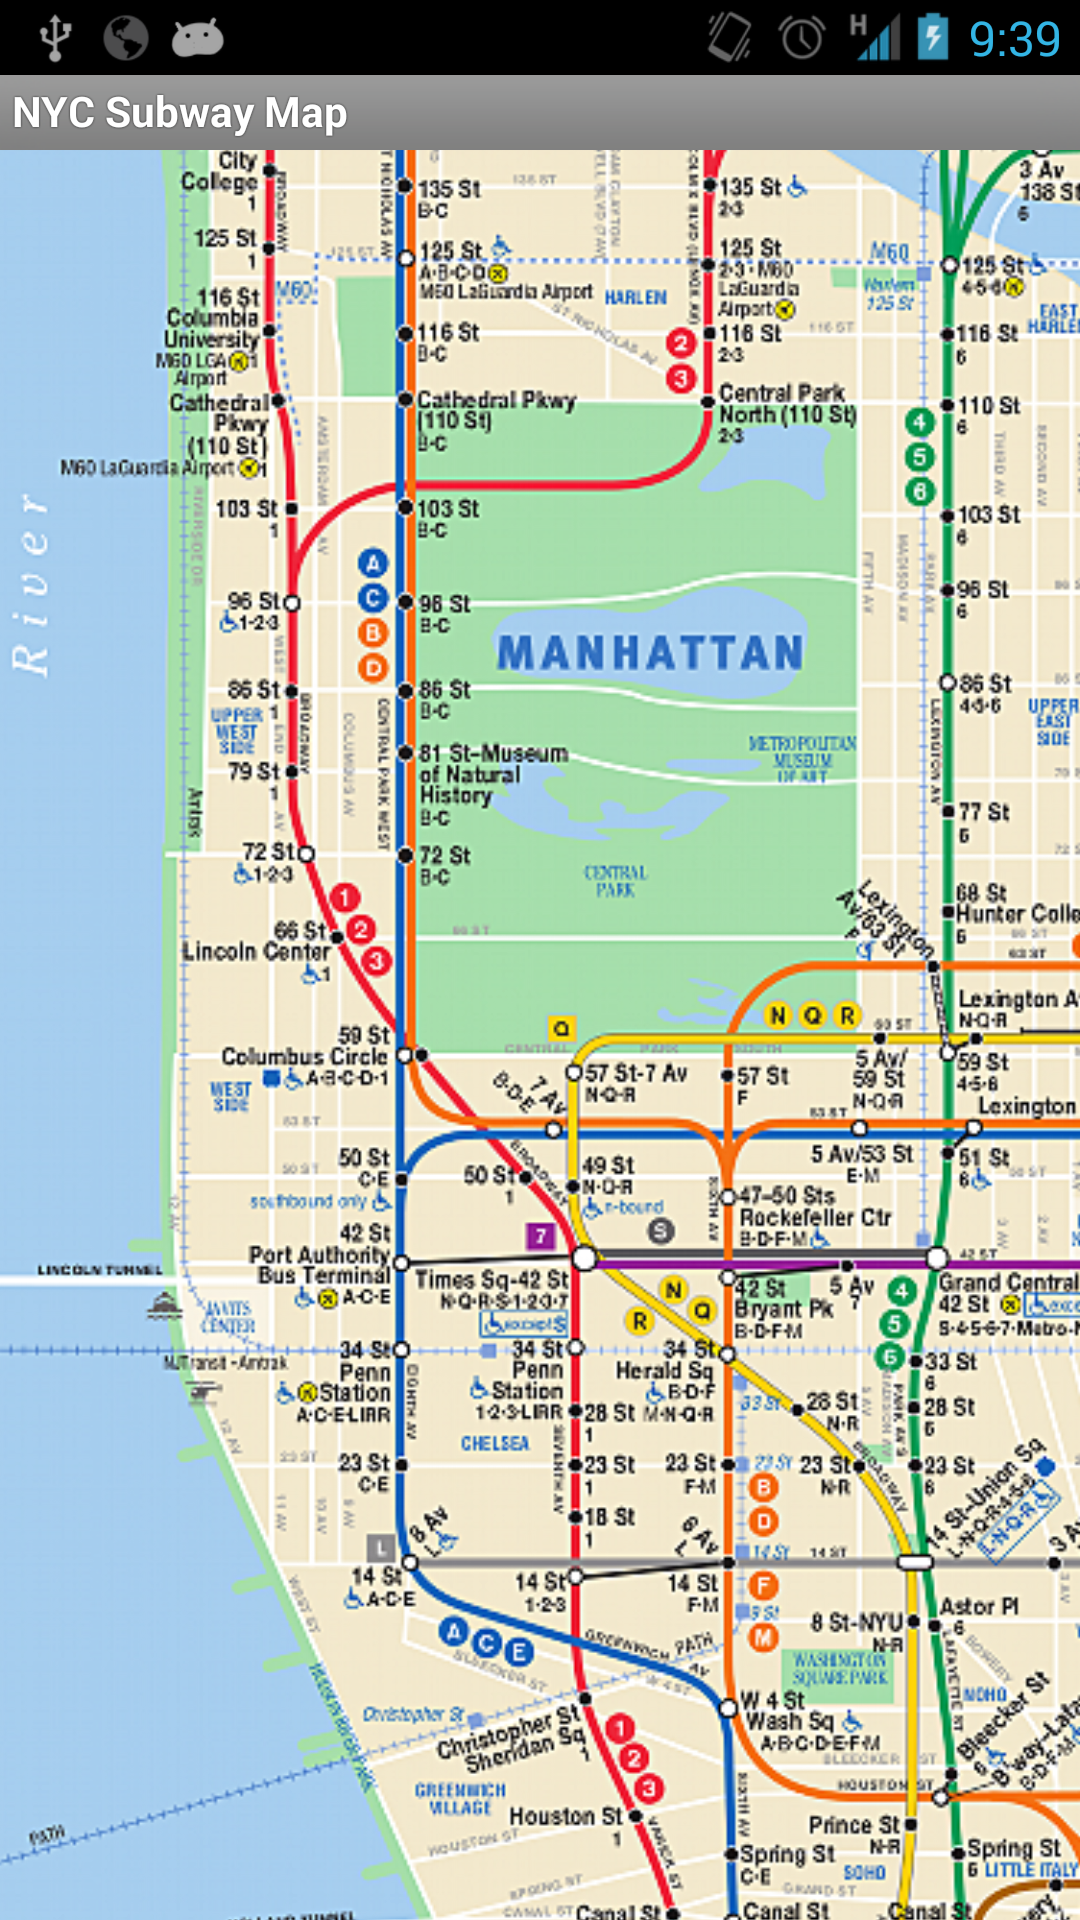 New York City Subway Map January 2001.Subway Map Nyc